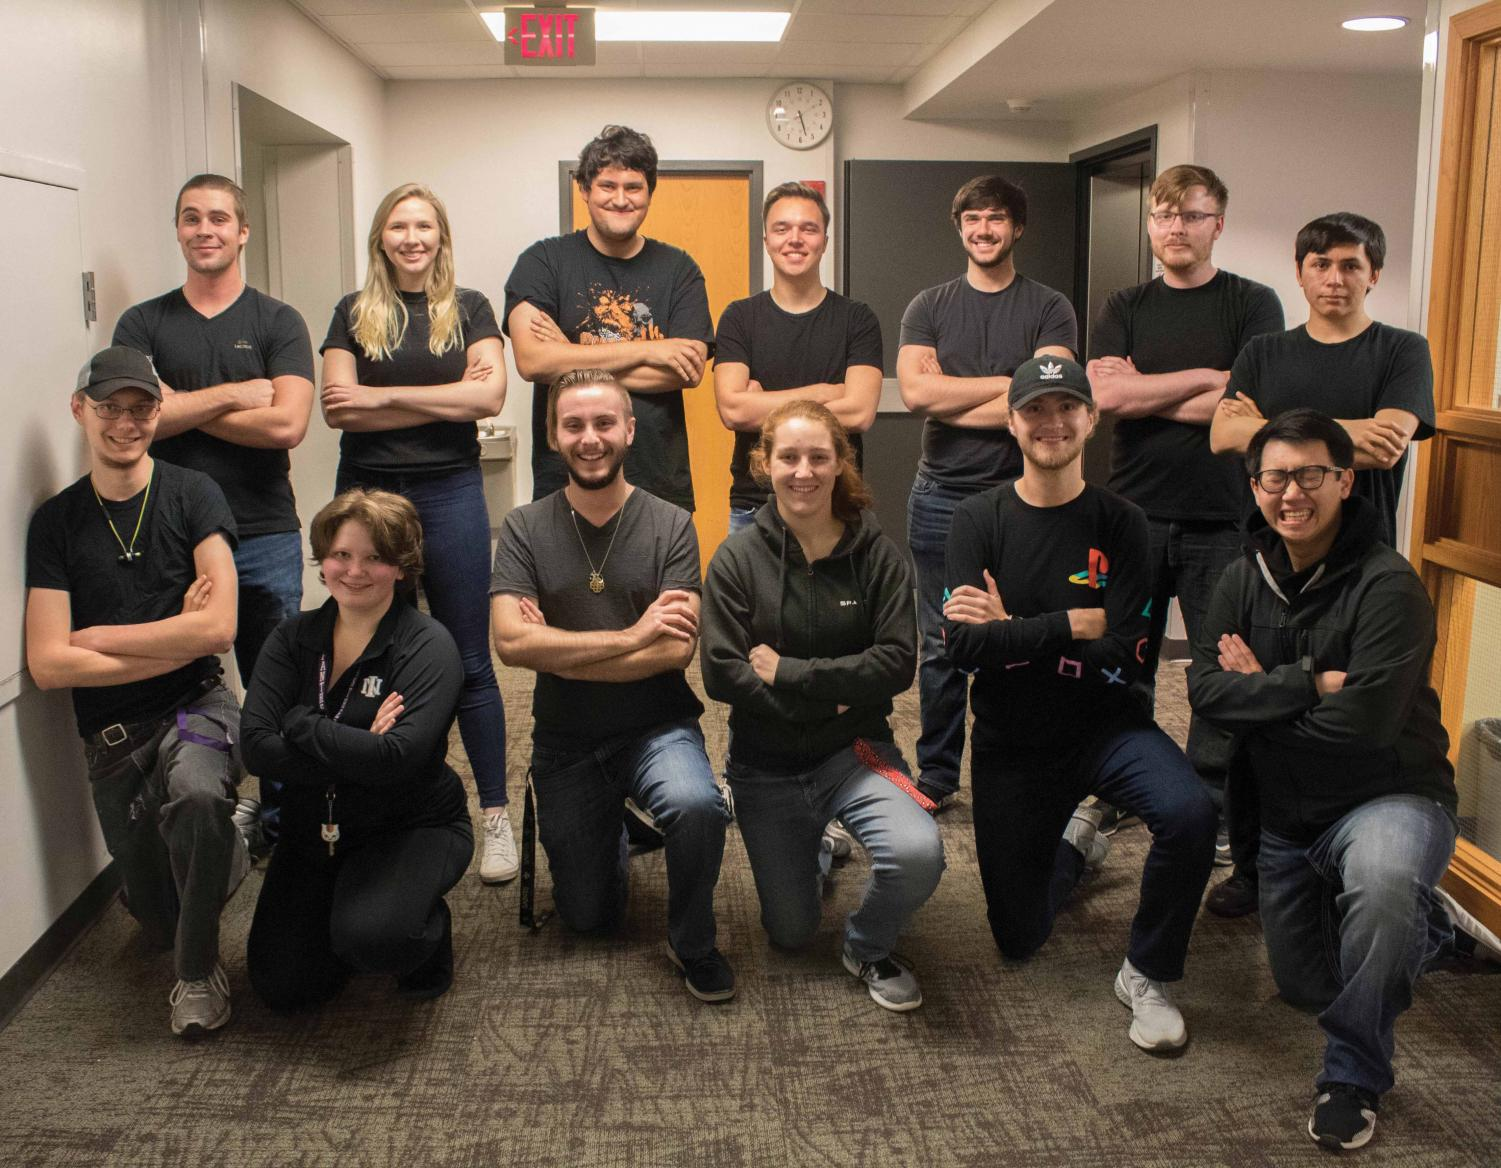 Panther eSports is UNI's competitive gaming student organization, and the growing organization is hoping to expand in dorms and in UNI athletics.